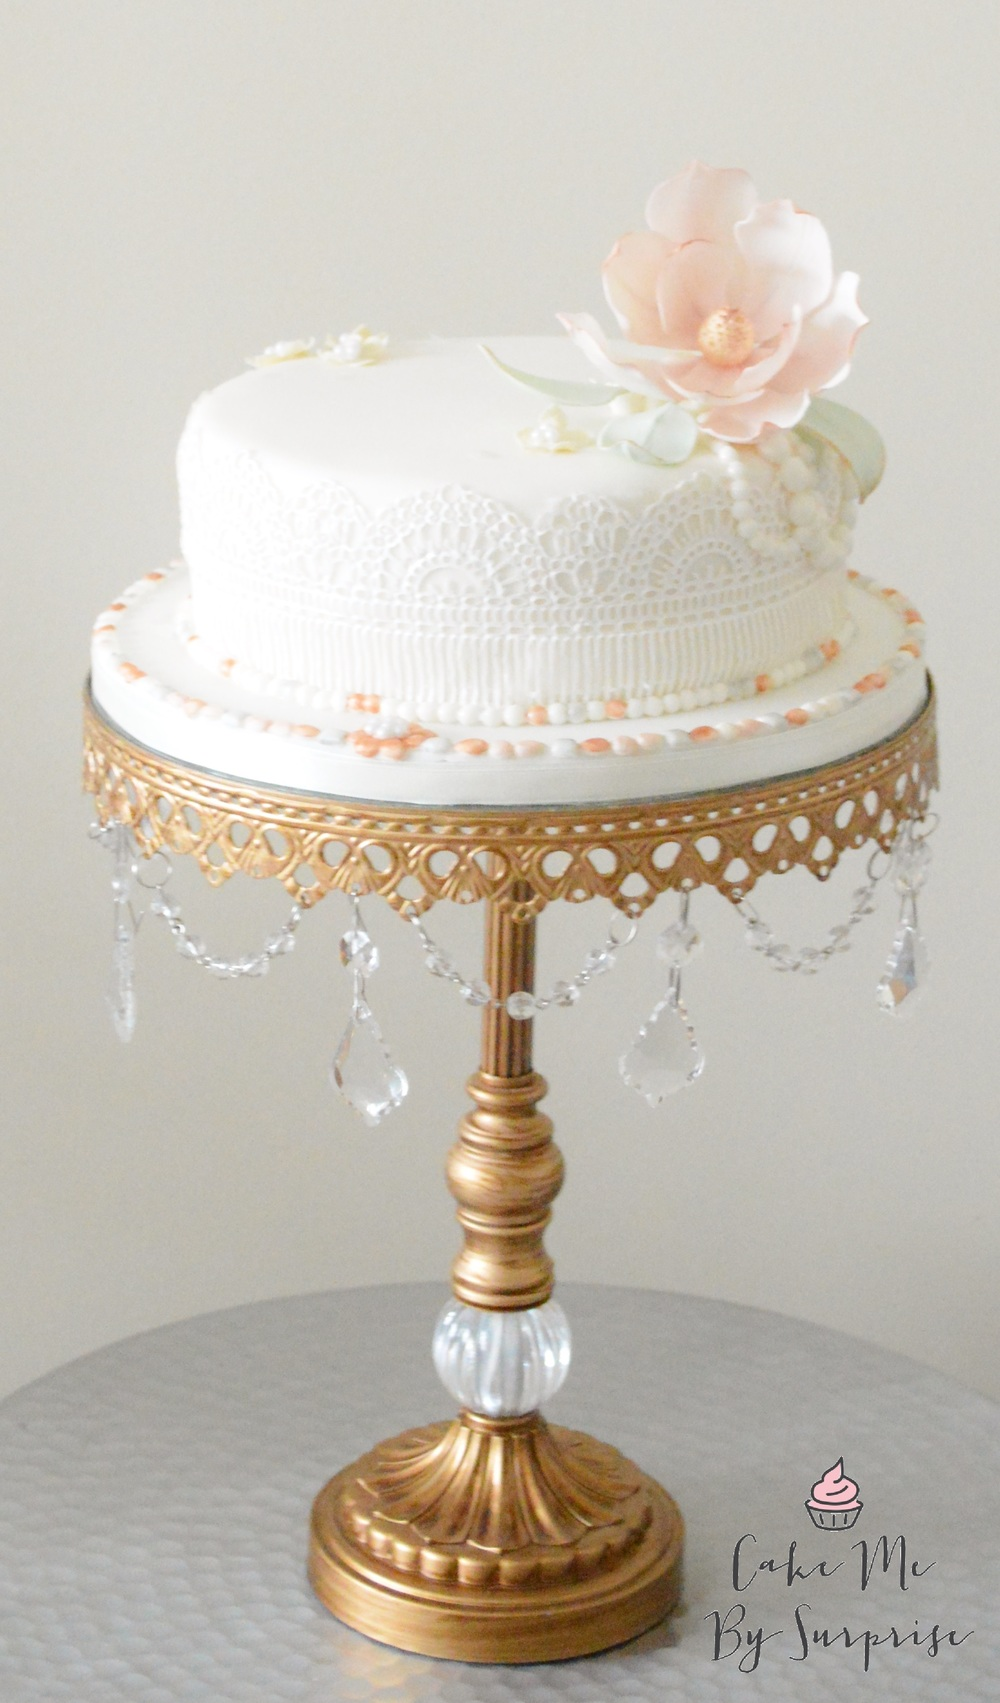 1920s Vintage Wedding   Perfect for an intimate wedding, a small serving vintage inspired wedding cake complete with pearls,handcrafted sugar magnolia and dressed with sugar paste beading and jewelry. This design can be adapted into a a tiered cake to achieve a real 'Wow!' factor.